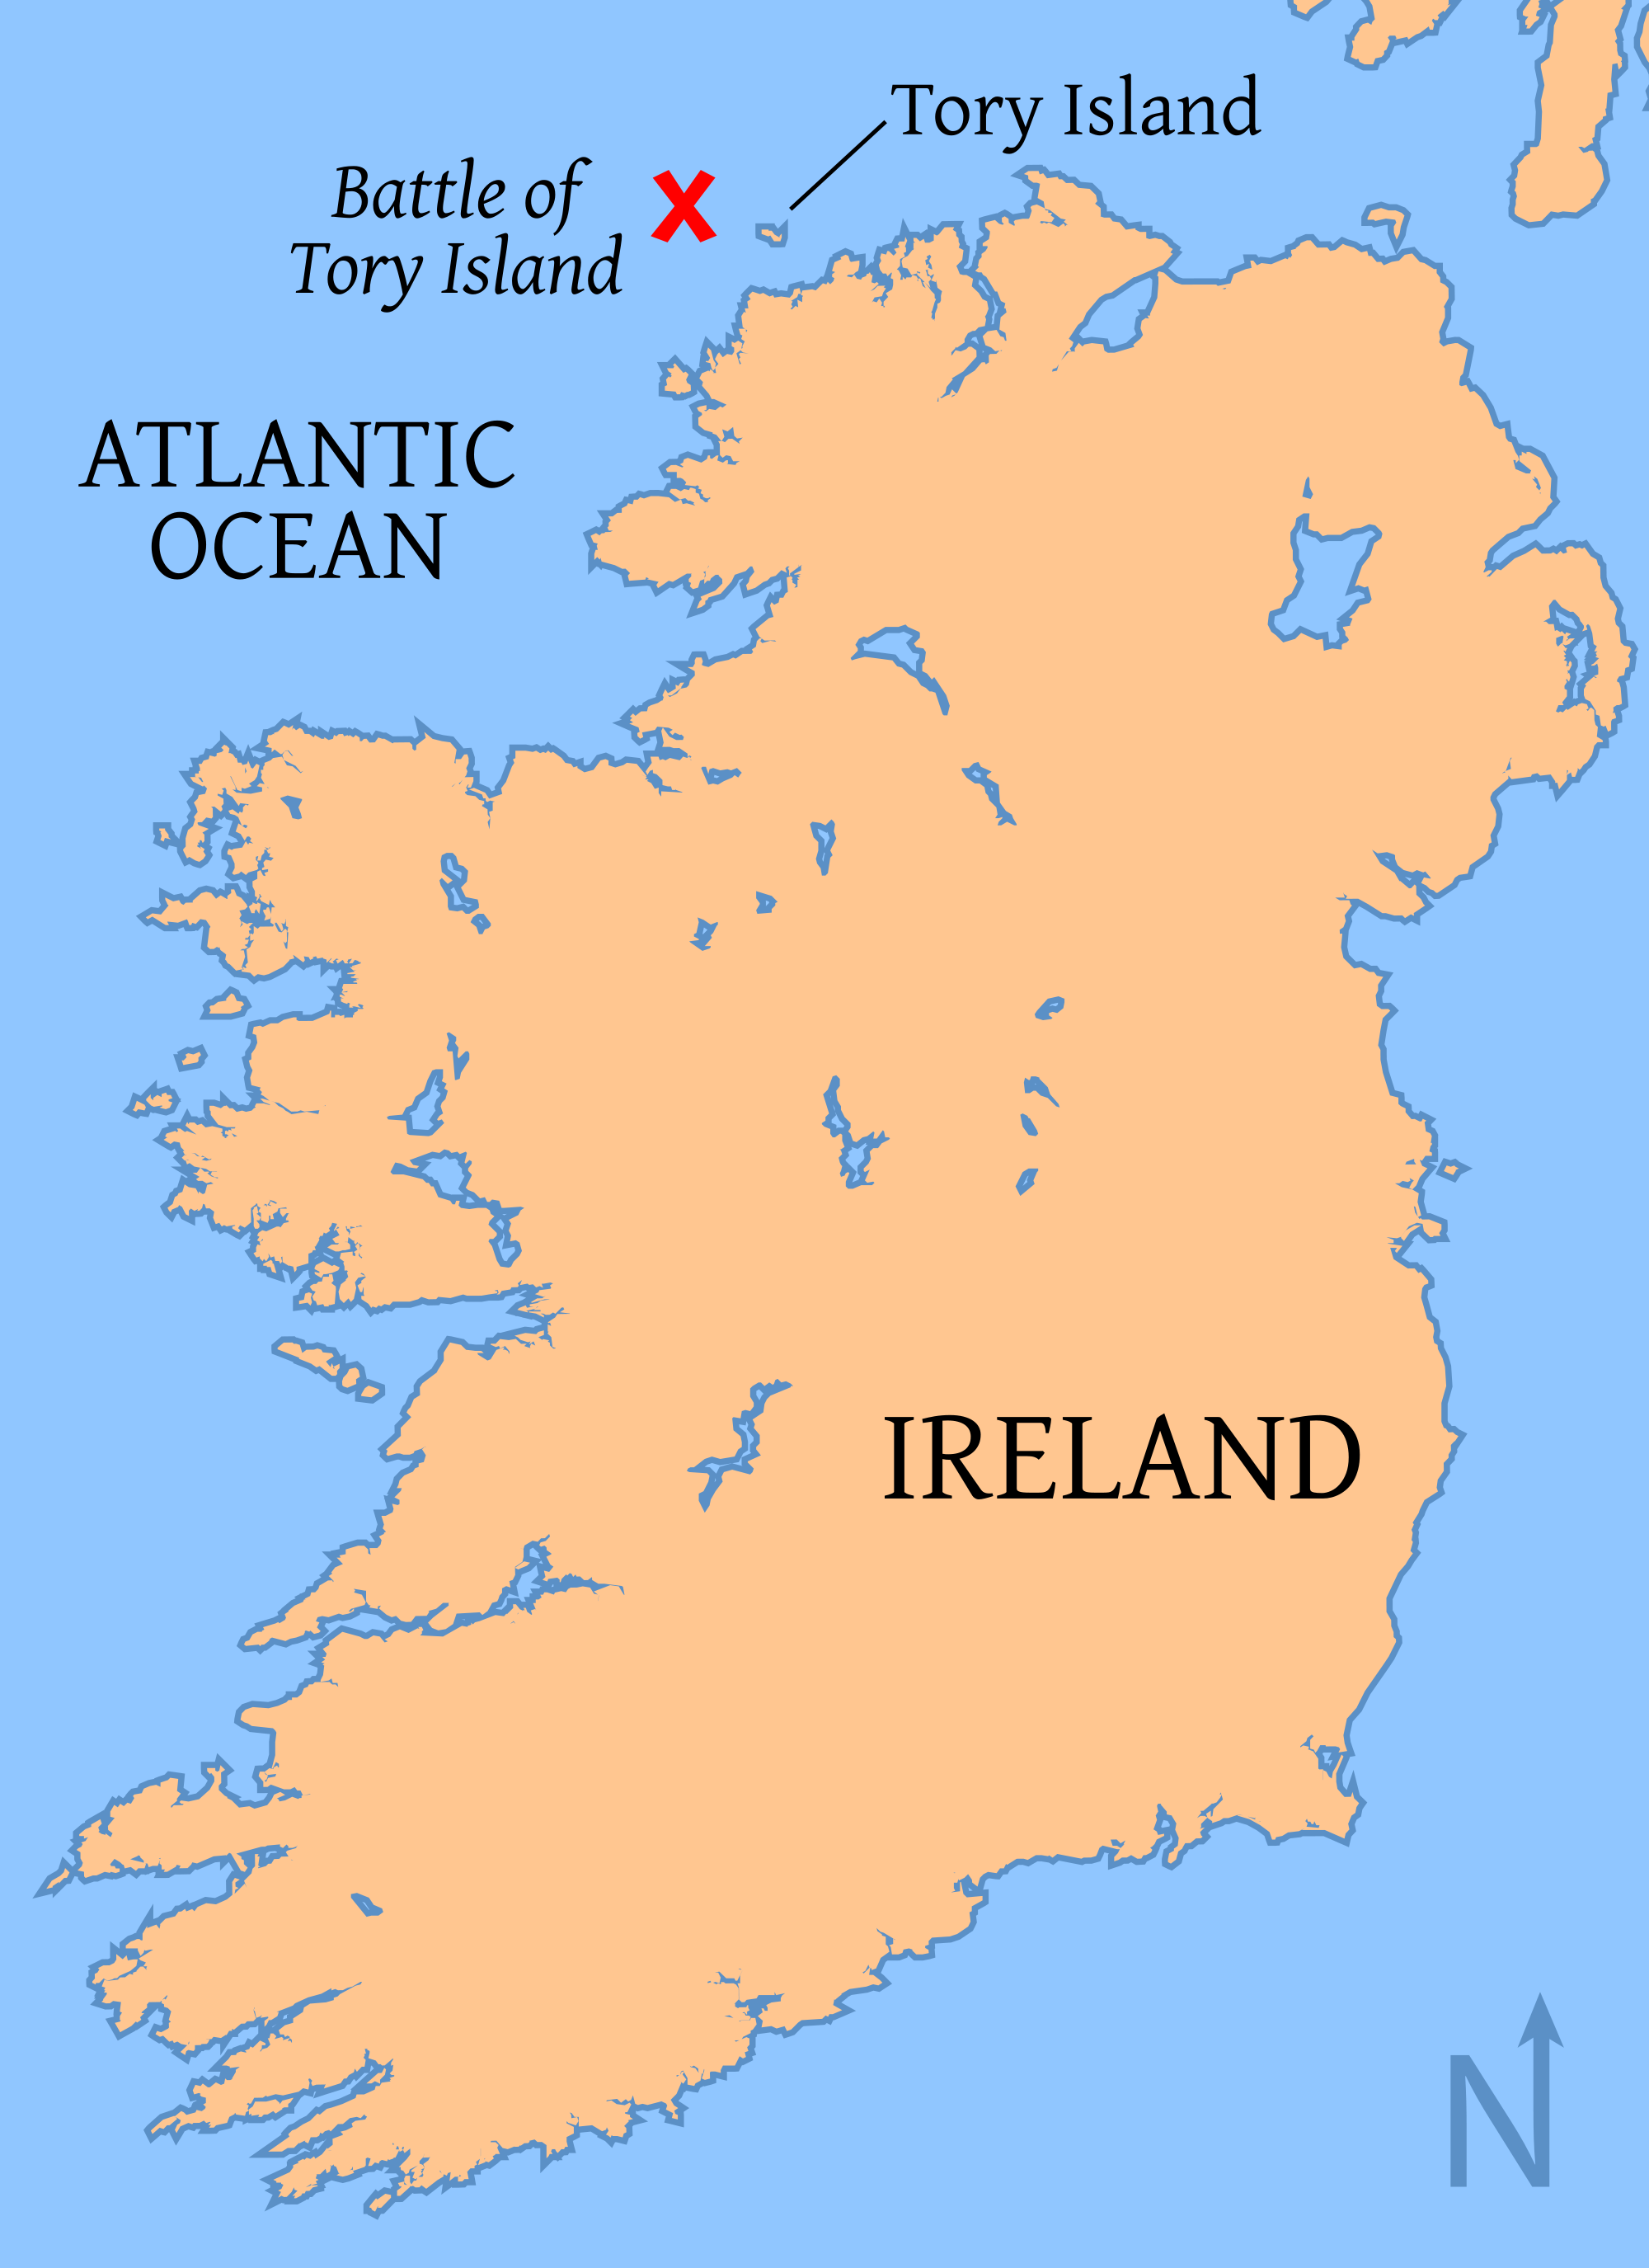 Map Of Ireland With Islands.Map Of Ireland With Tory Island And The Battle Location Shown